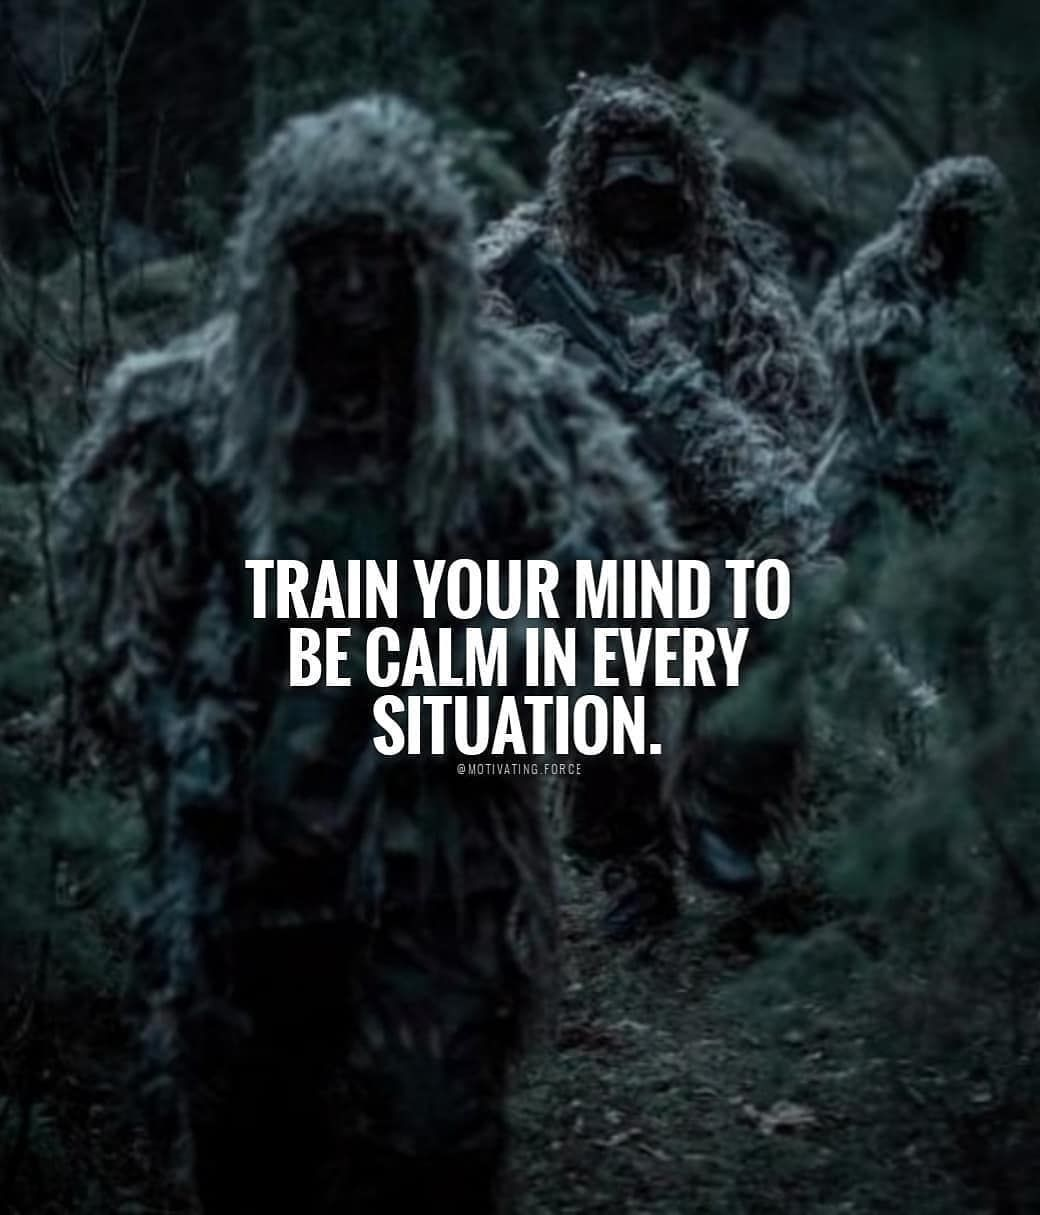 [Image] Train your mind to be calm in every situation.